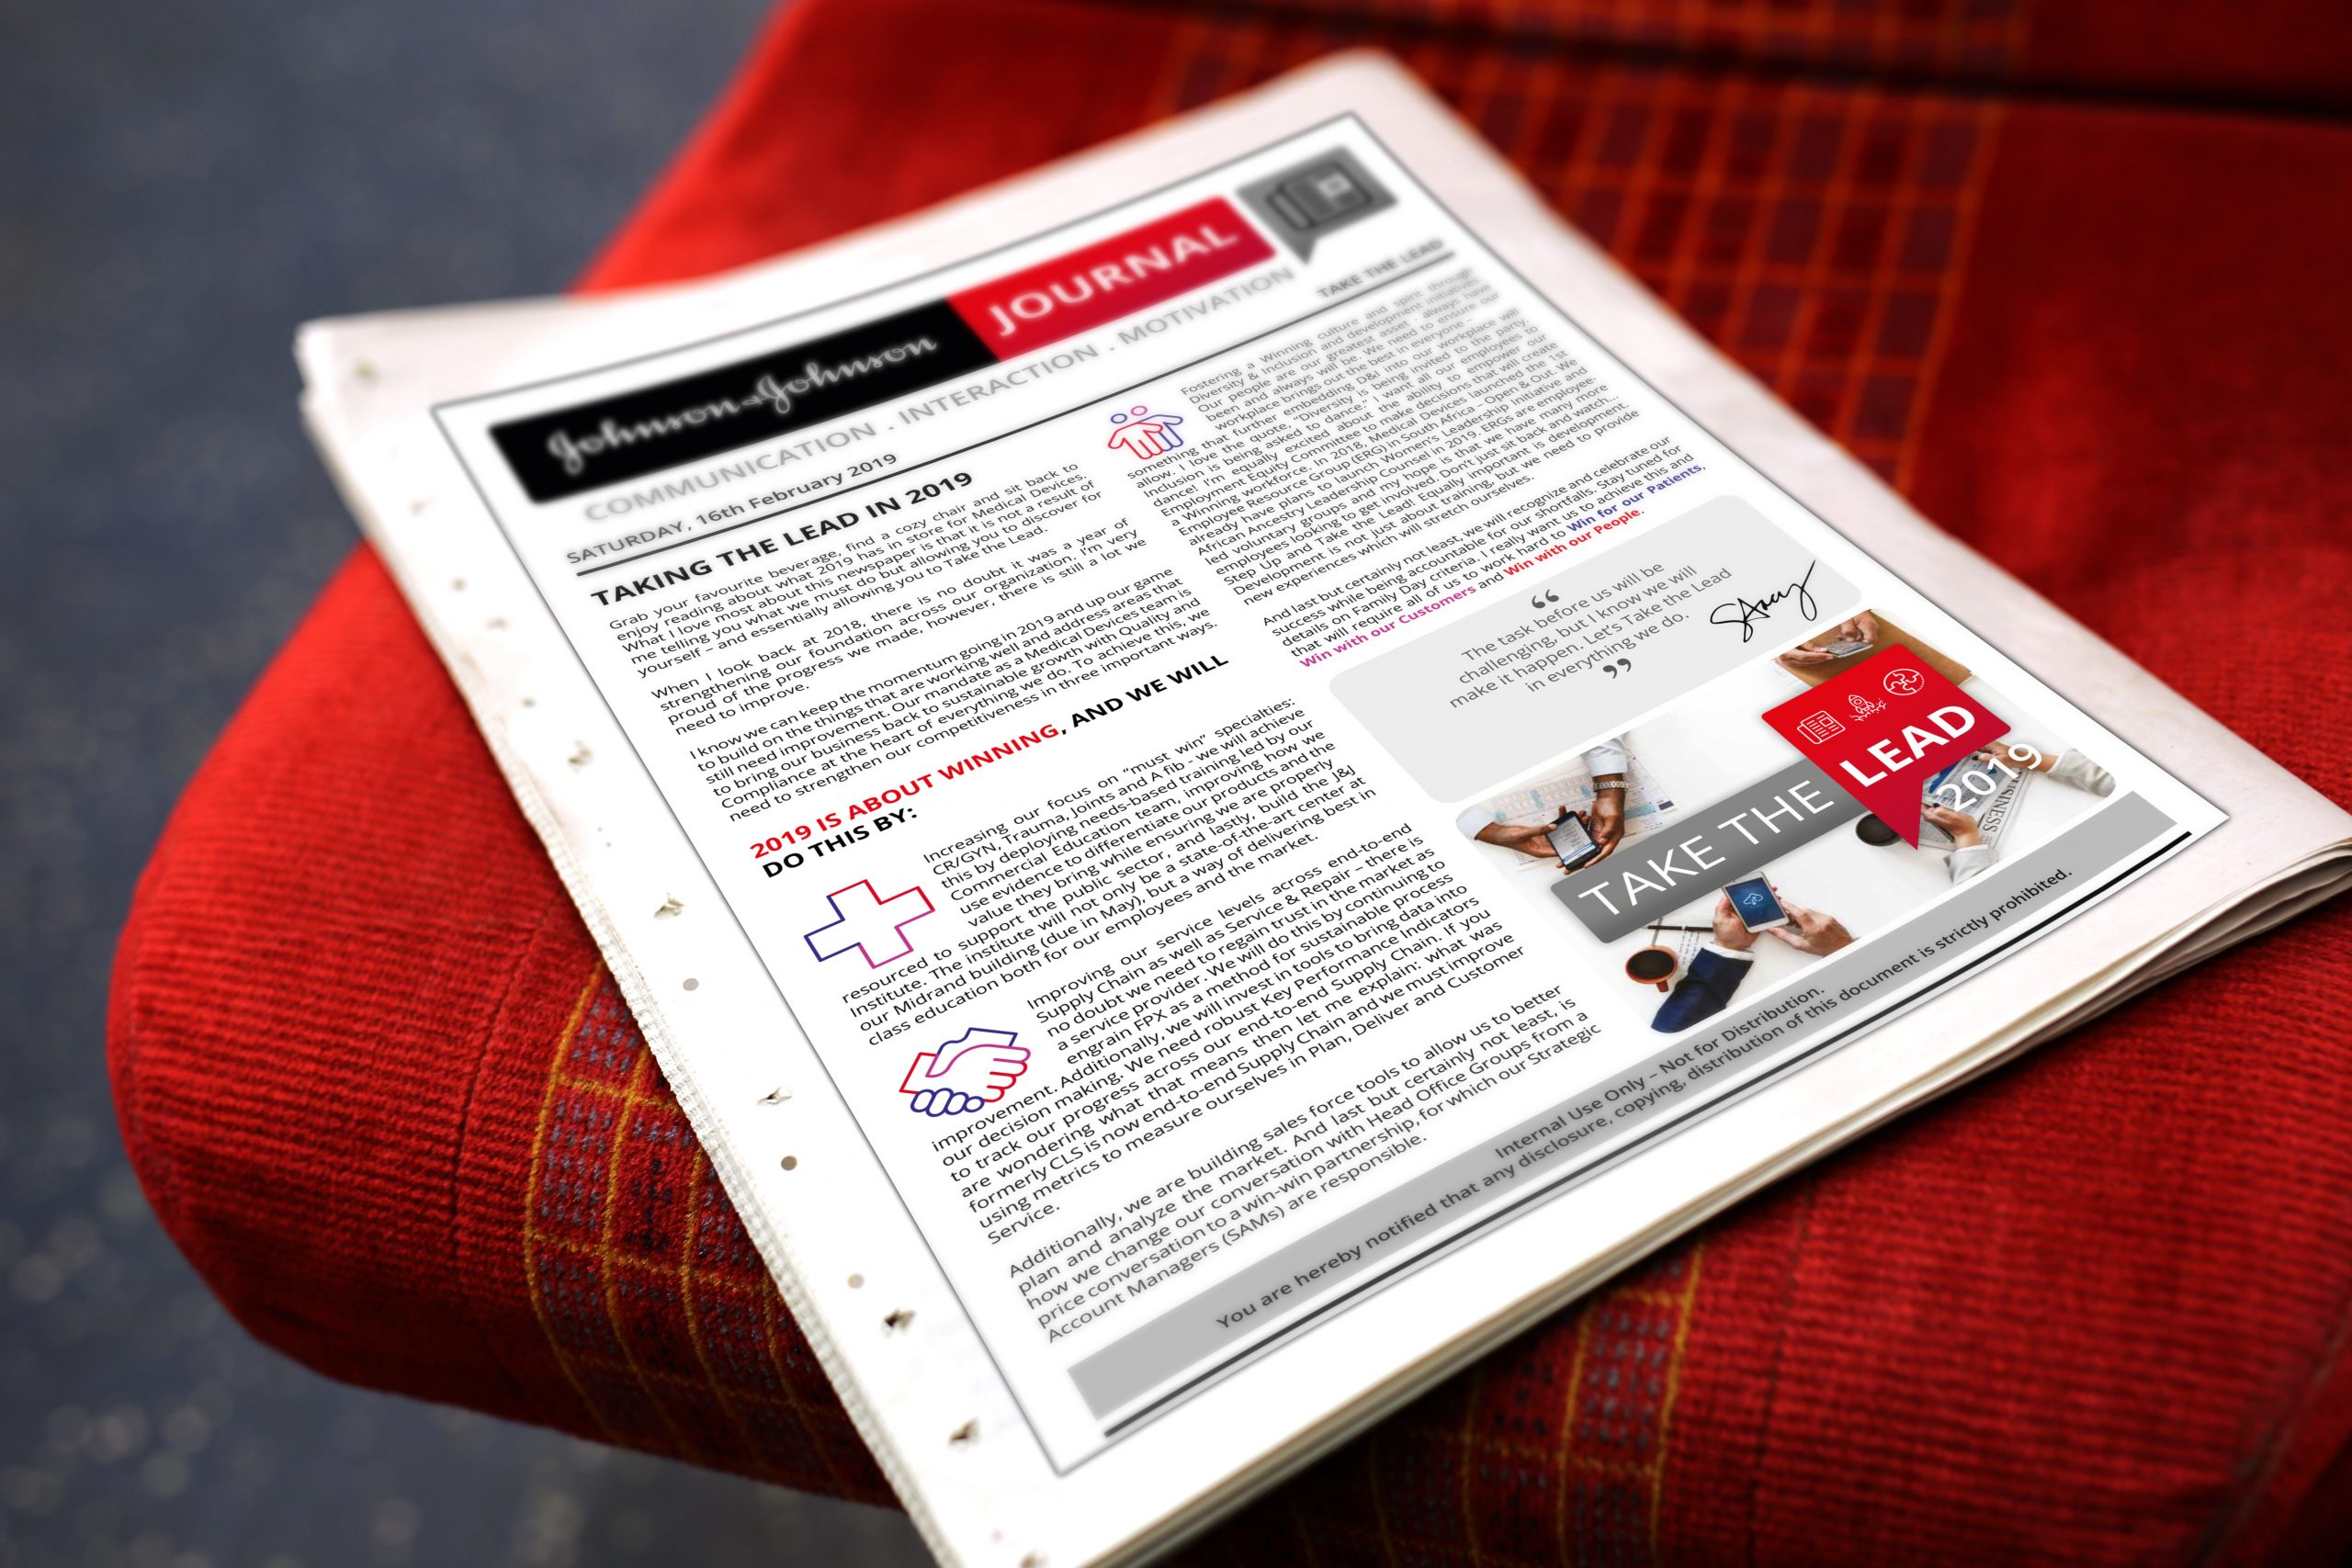 Johnson & Johnson - National Kick-off 2019 - Conference Newspapers